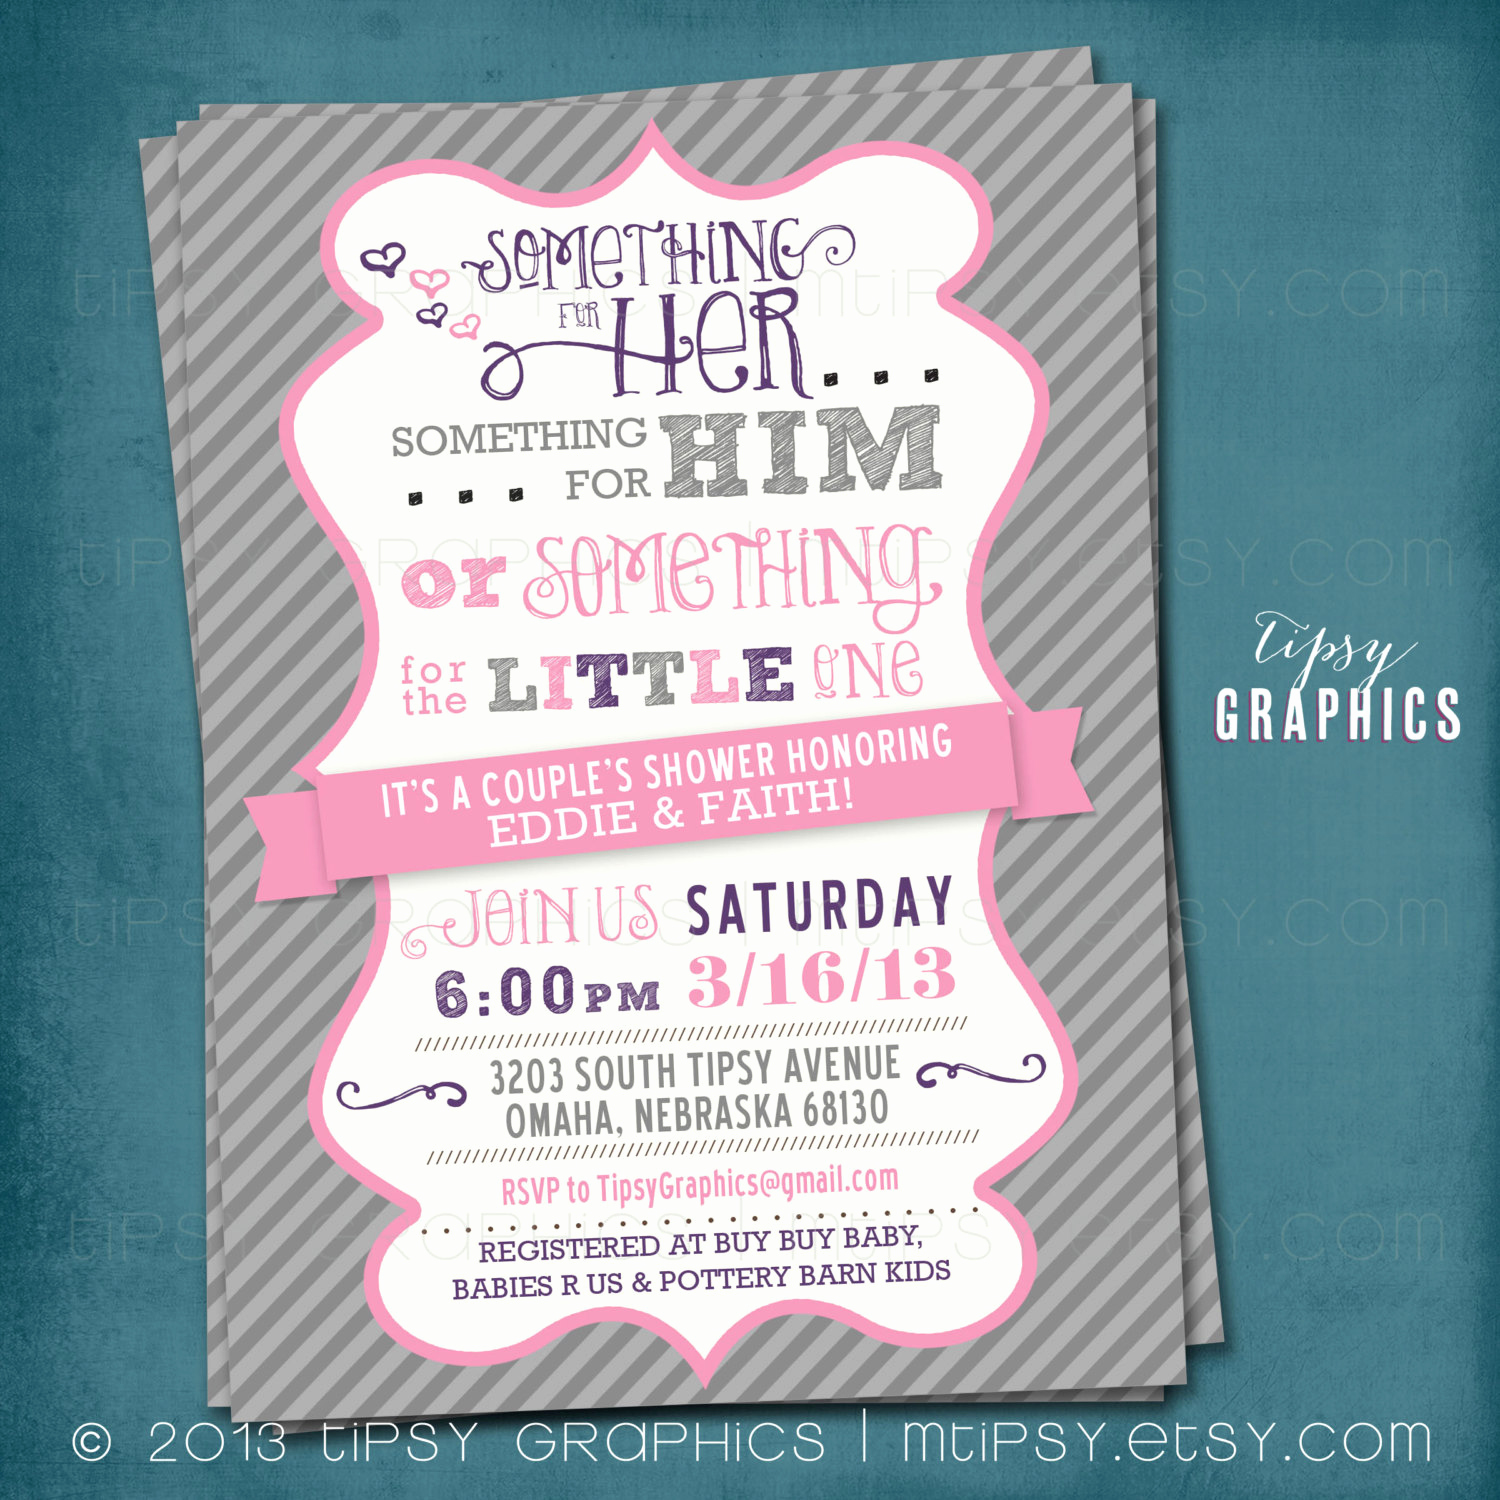 Coed Baby Shower Invitation Ideas Inspirational Coed Couple S Baby Shower Invite Chevron something for